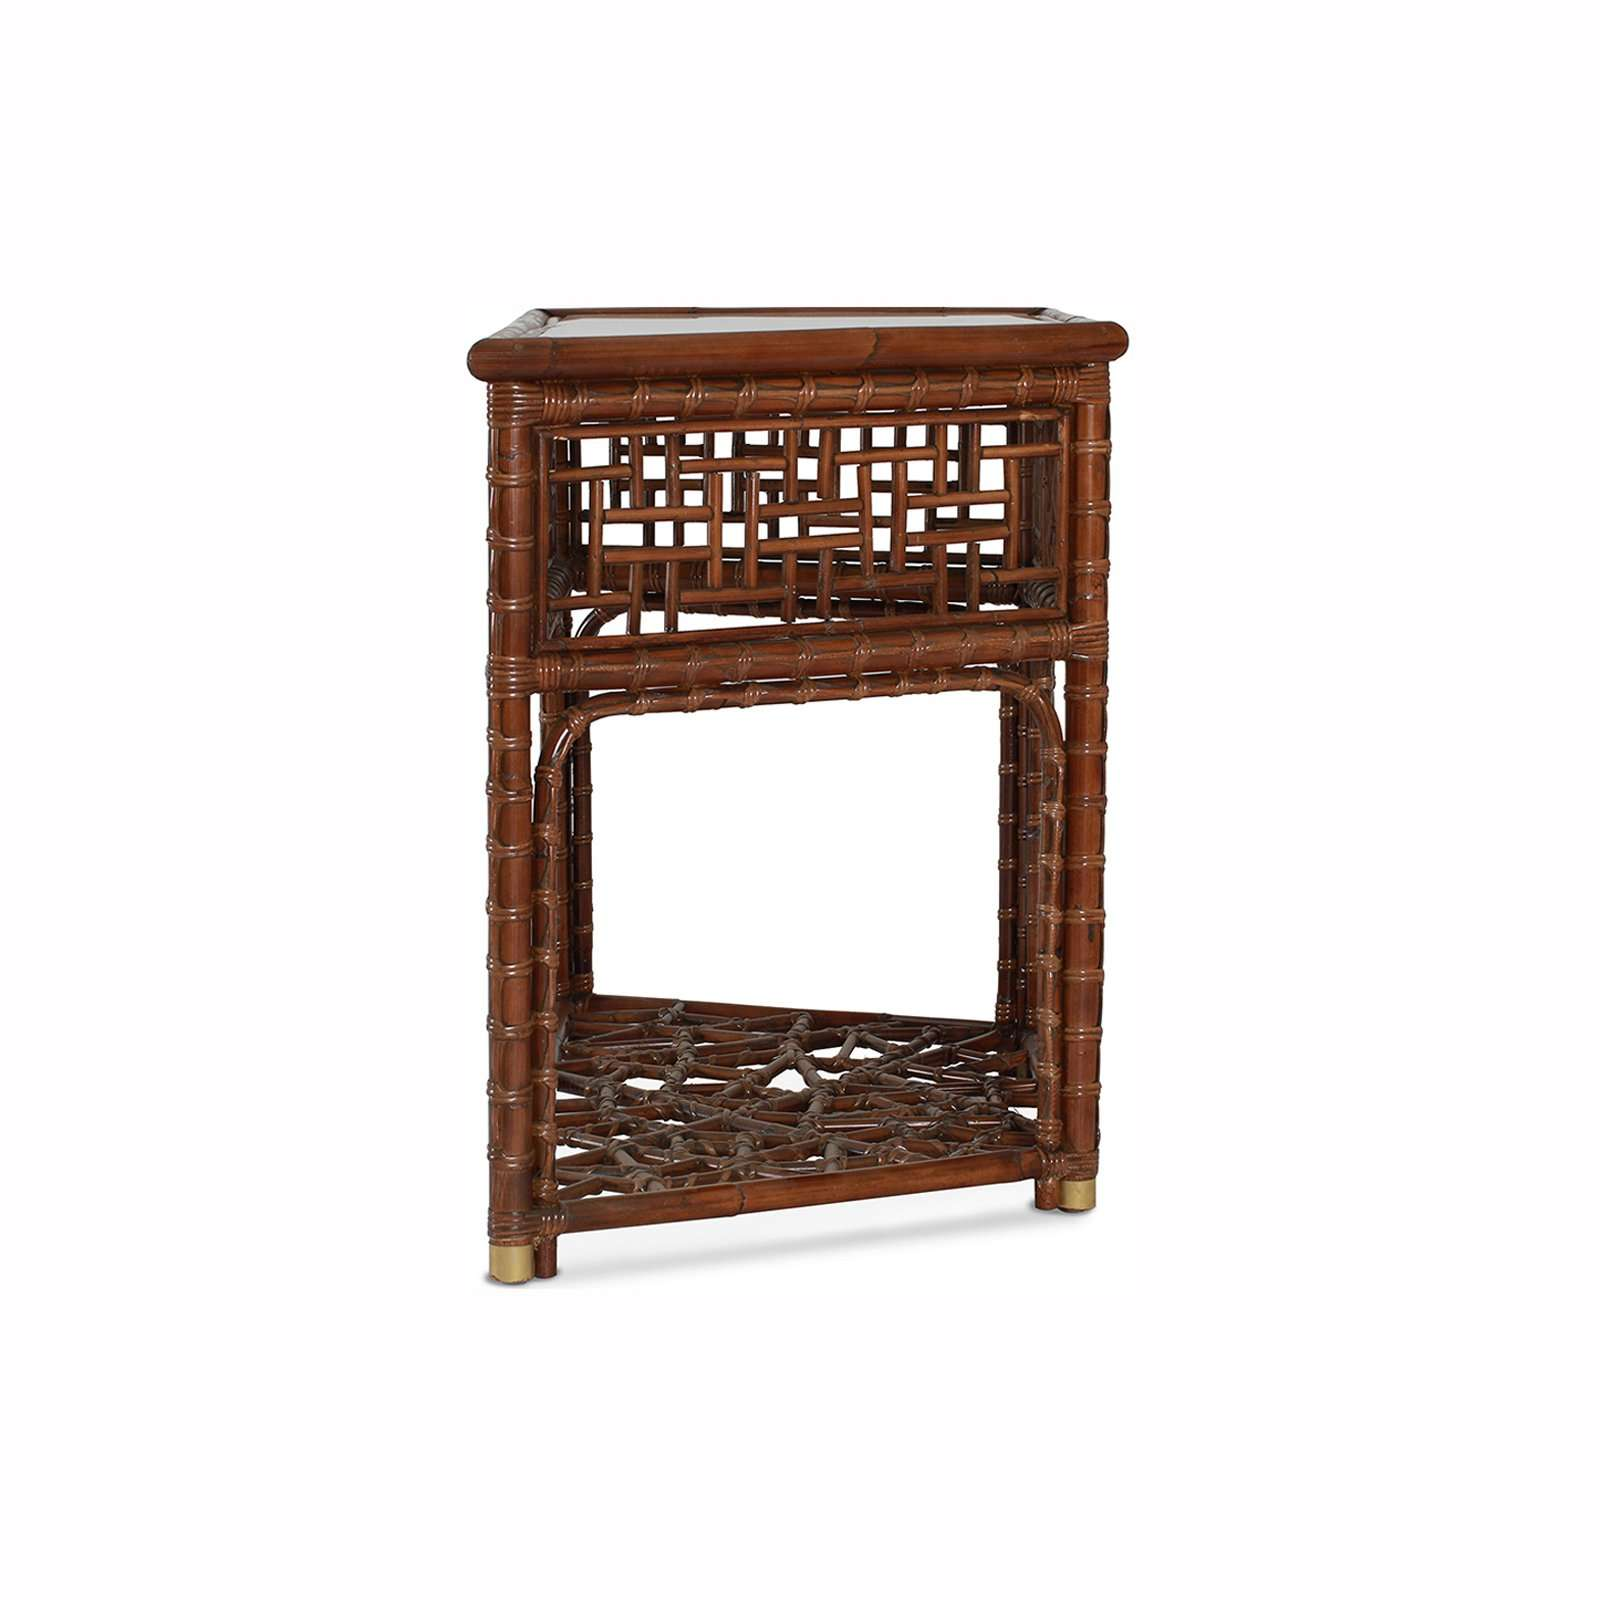 MANDALAY DEMI LUNE CONSOLE 3 - STUART MEMBERY HOME COLLECTION